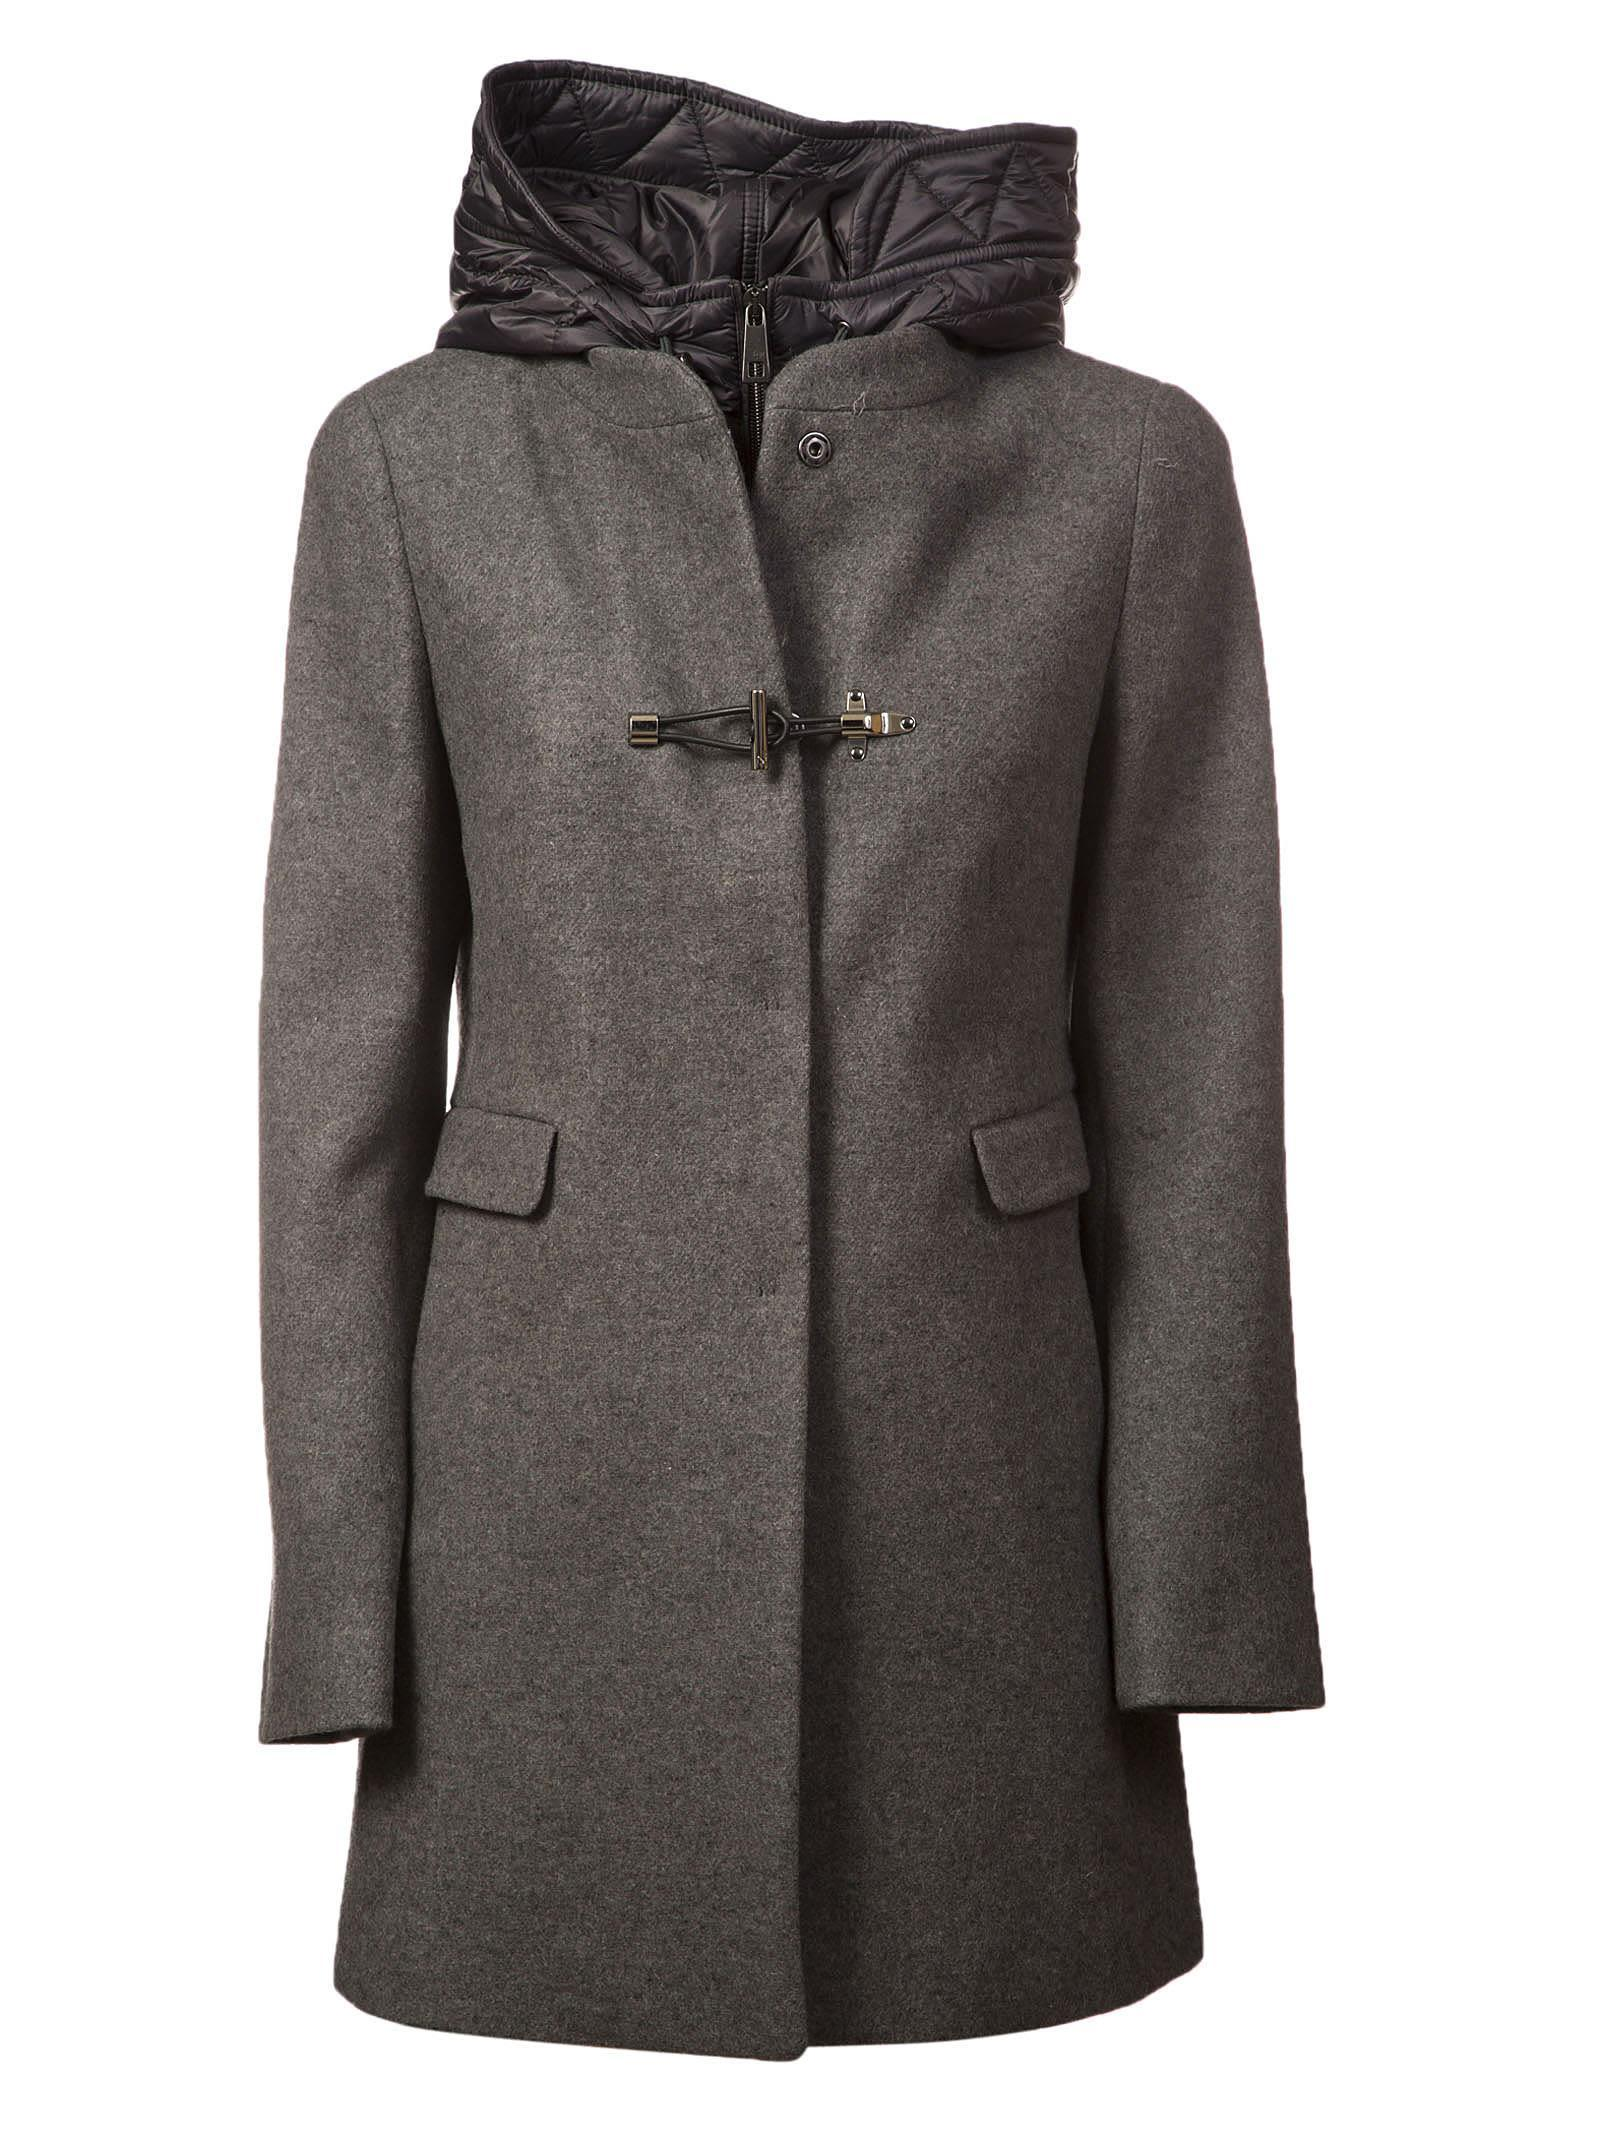 Fay Hooded Toggle Coat In Grigio Scuro Melange